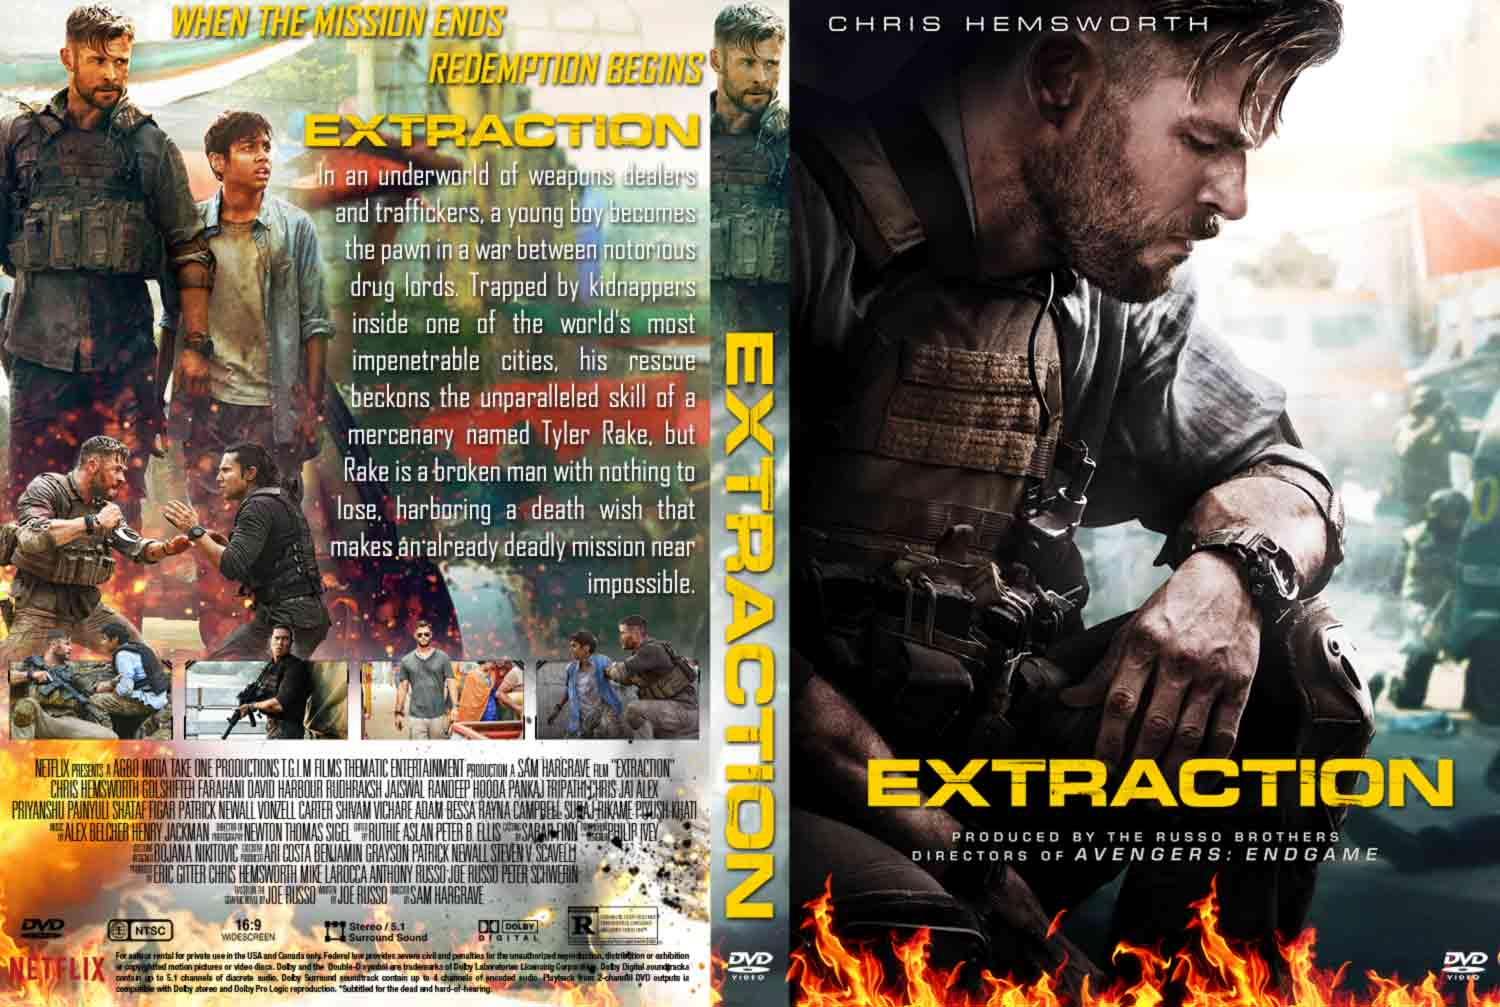 Extraction Front Dvd Covers Cover Century Over 500 000 Album Art Covers For Free